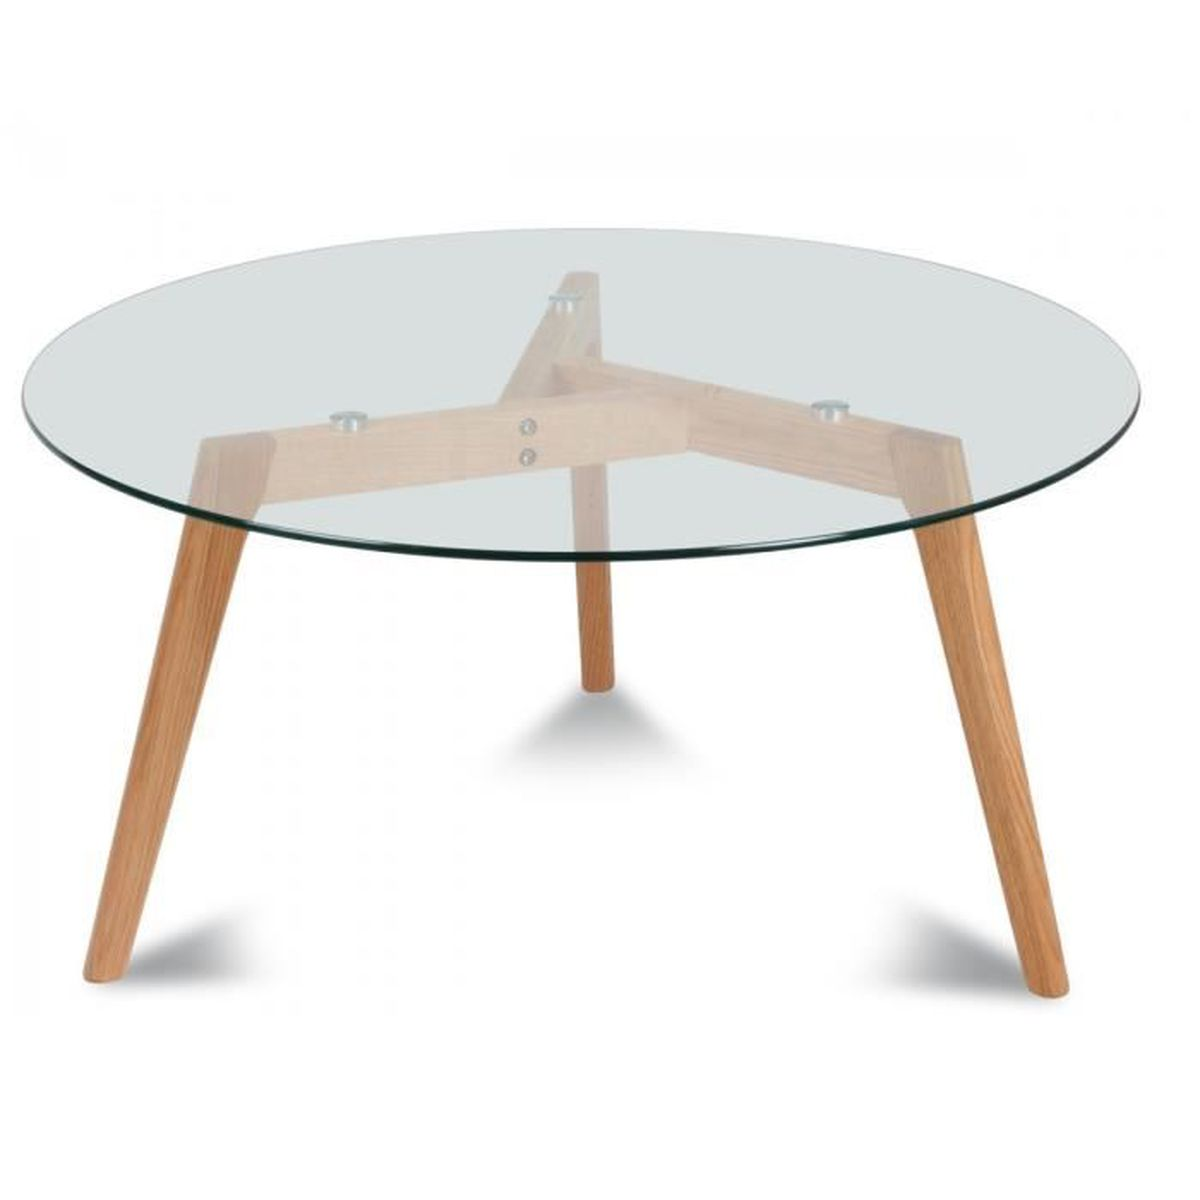 Table basse scandinave ronde 60cm plateau en verre et for Table basse scandinave laquee